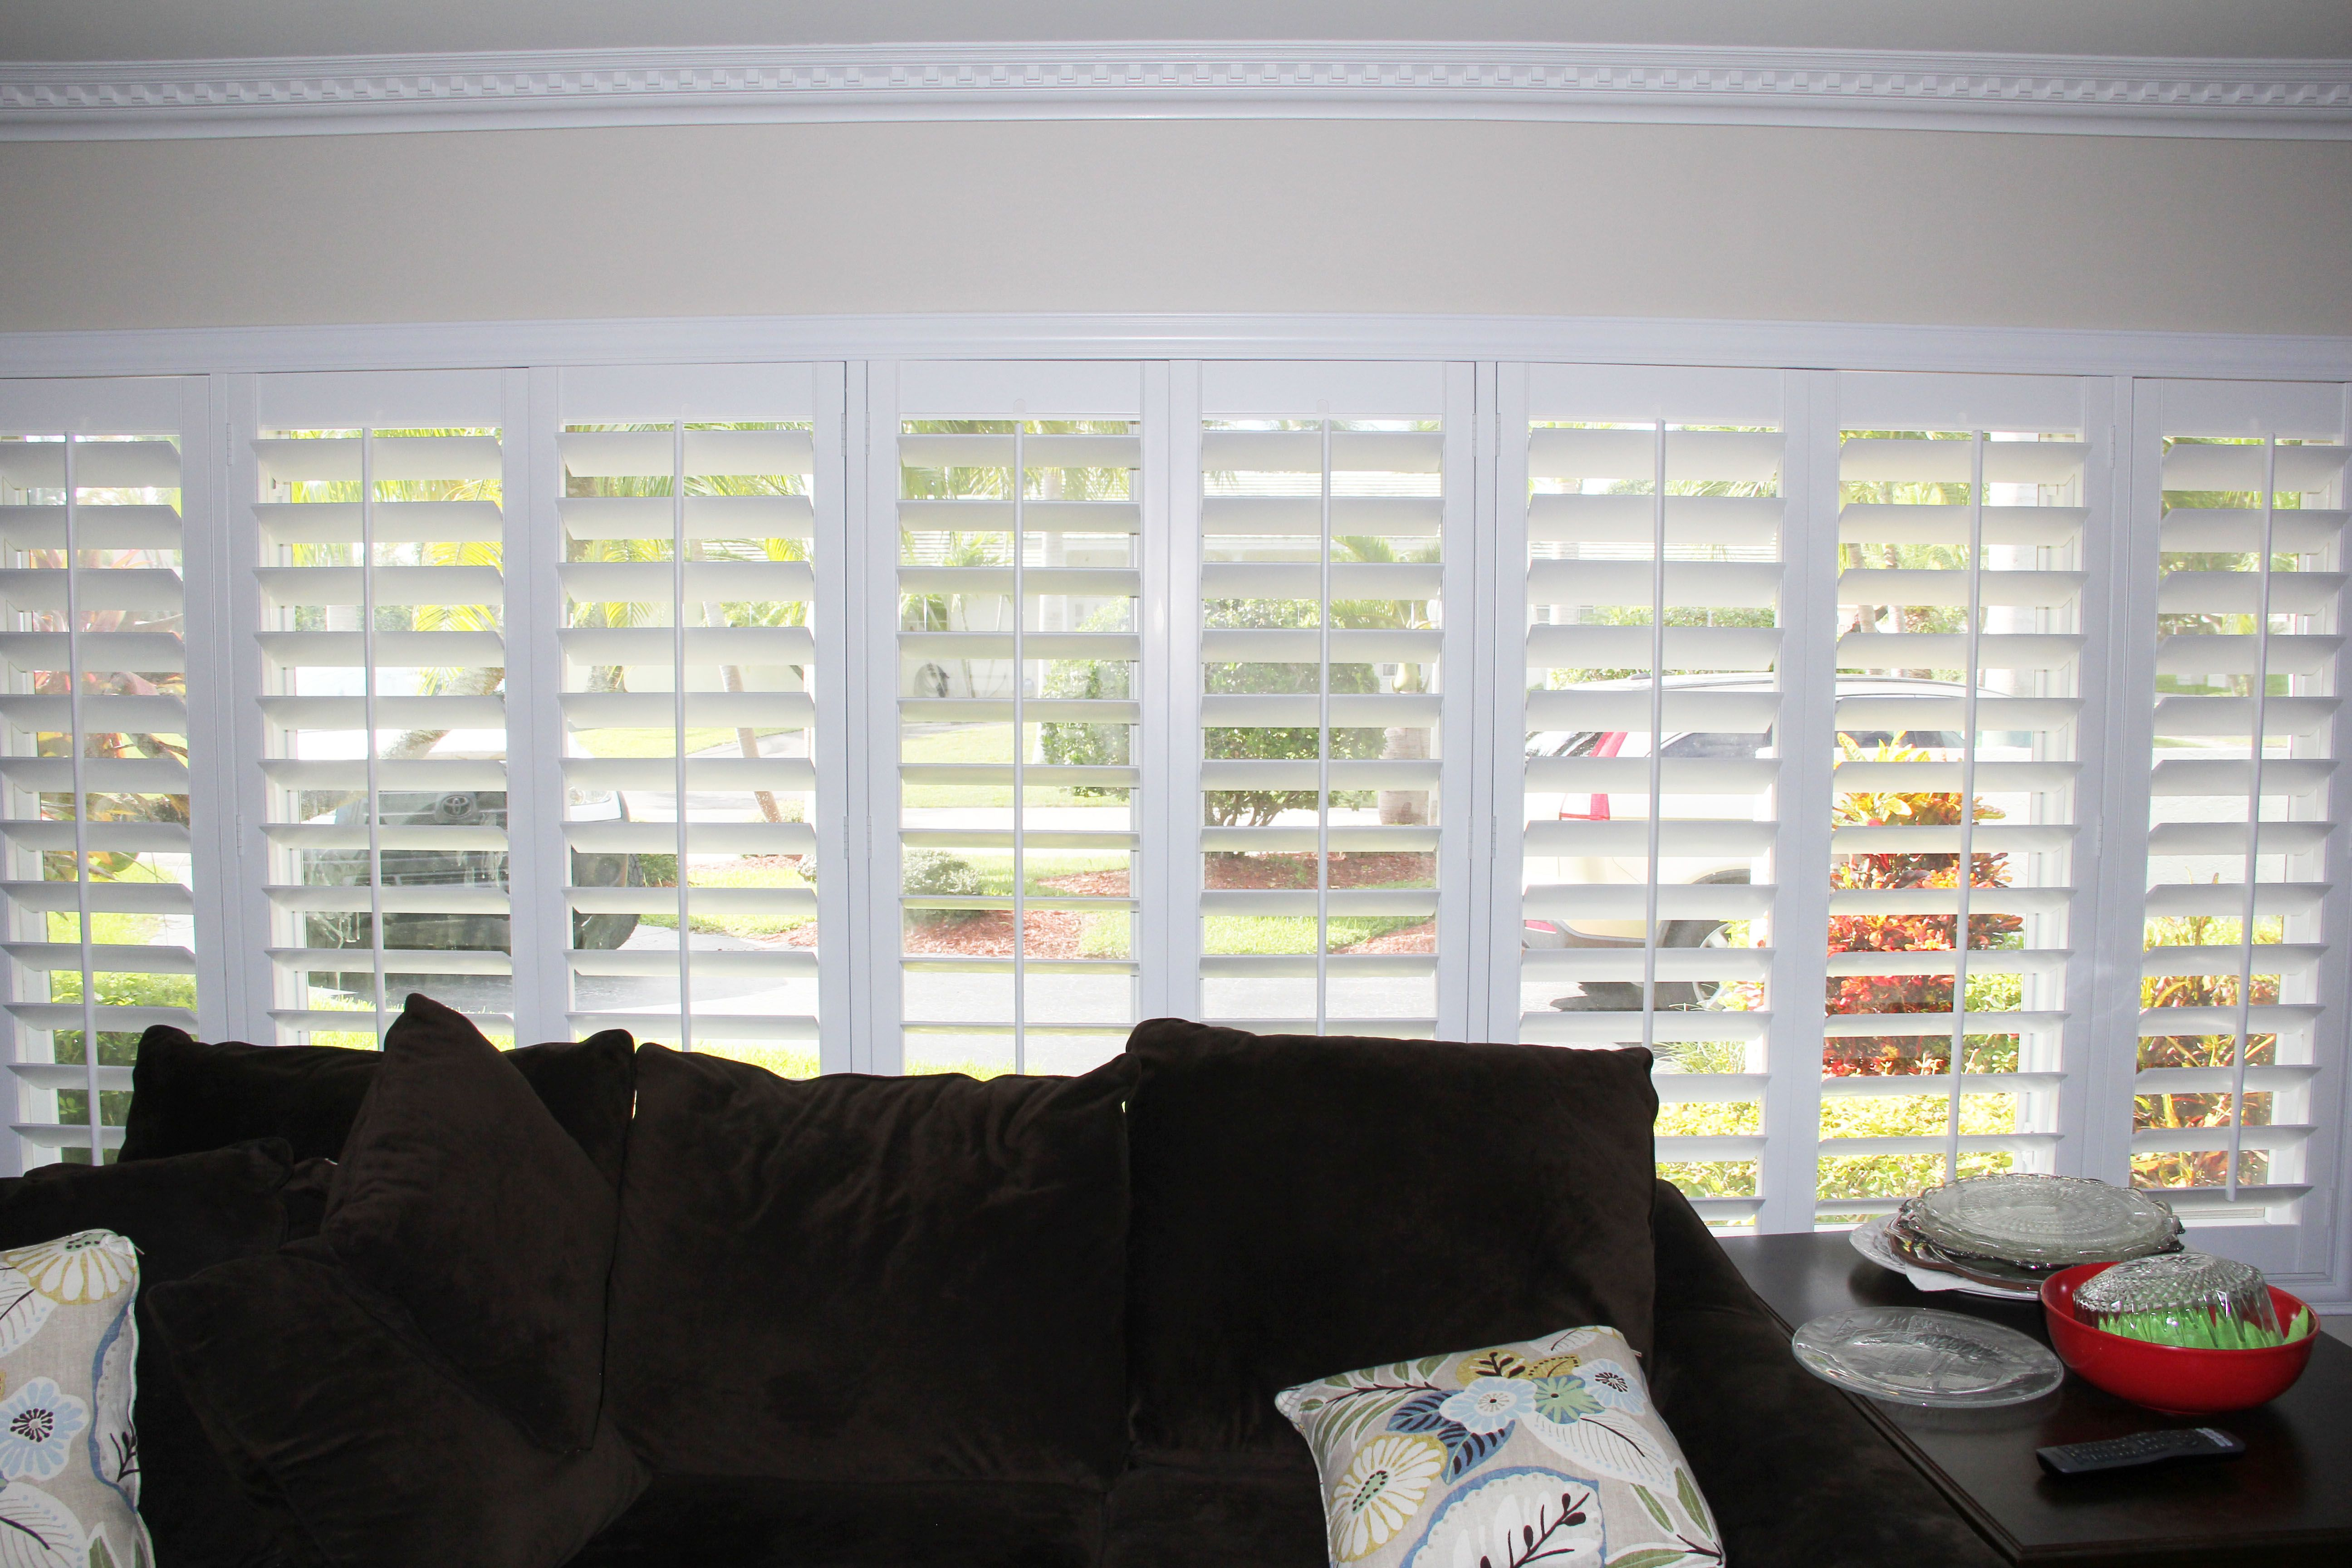 kapan costco date knoxville plantation exterior shutters for awesome masters shutter interior composite and